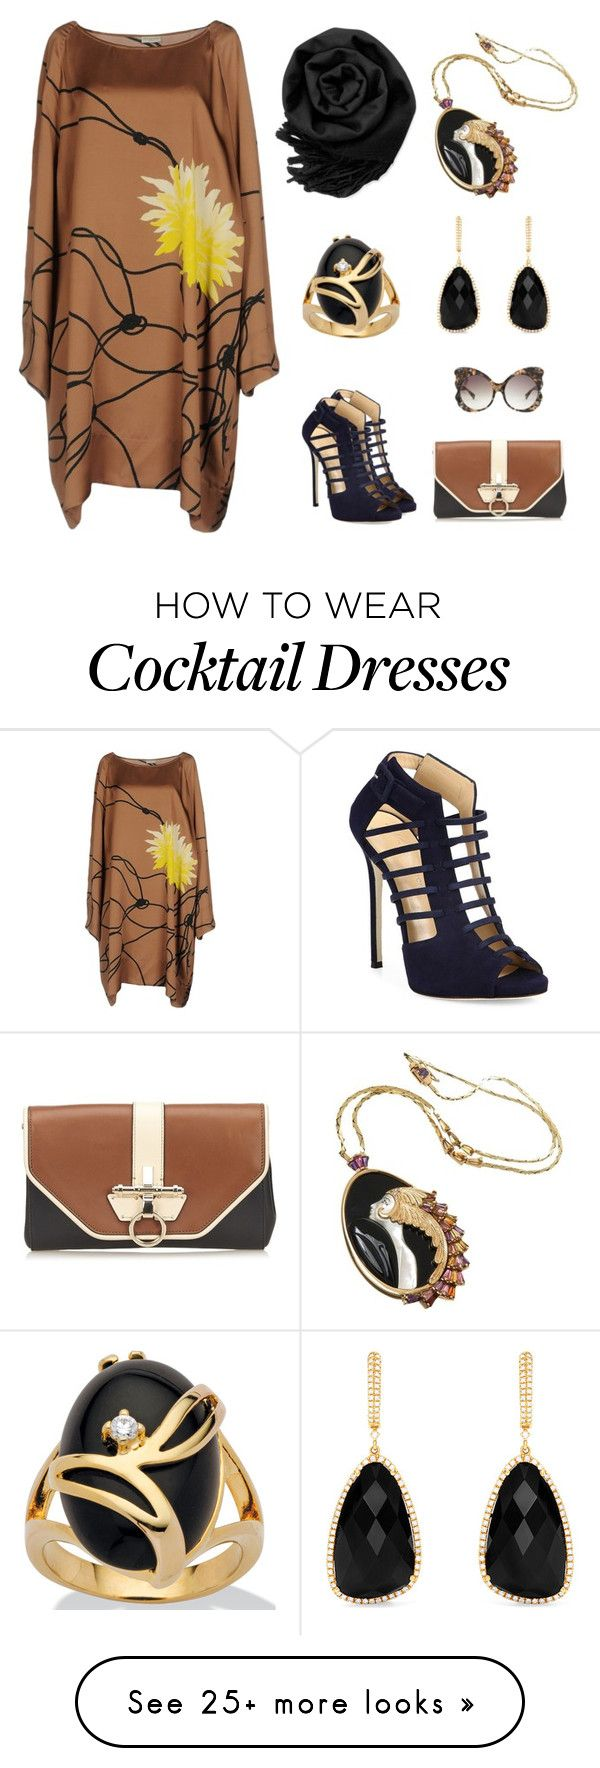 """Dinner Date"" by karen-galves on Polyvore featuring Dries Van Noten, Giuseppe Zanotti, Gearonic, Givenchy, Erté, Effy Jewelry, Palm Beach Jewelry and Matthew Williamson"